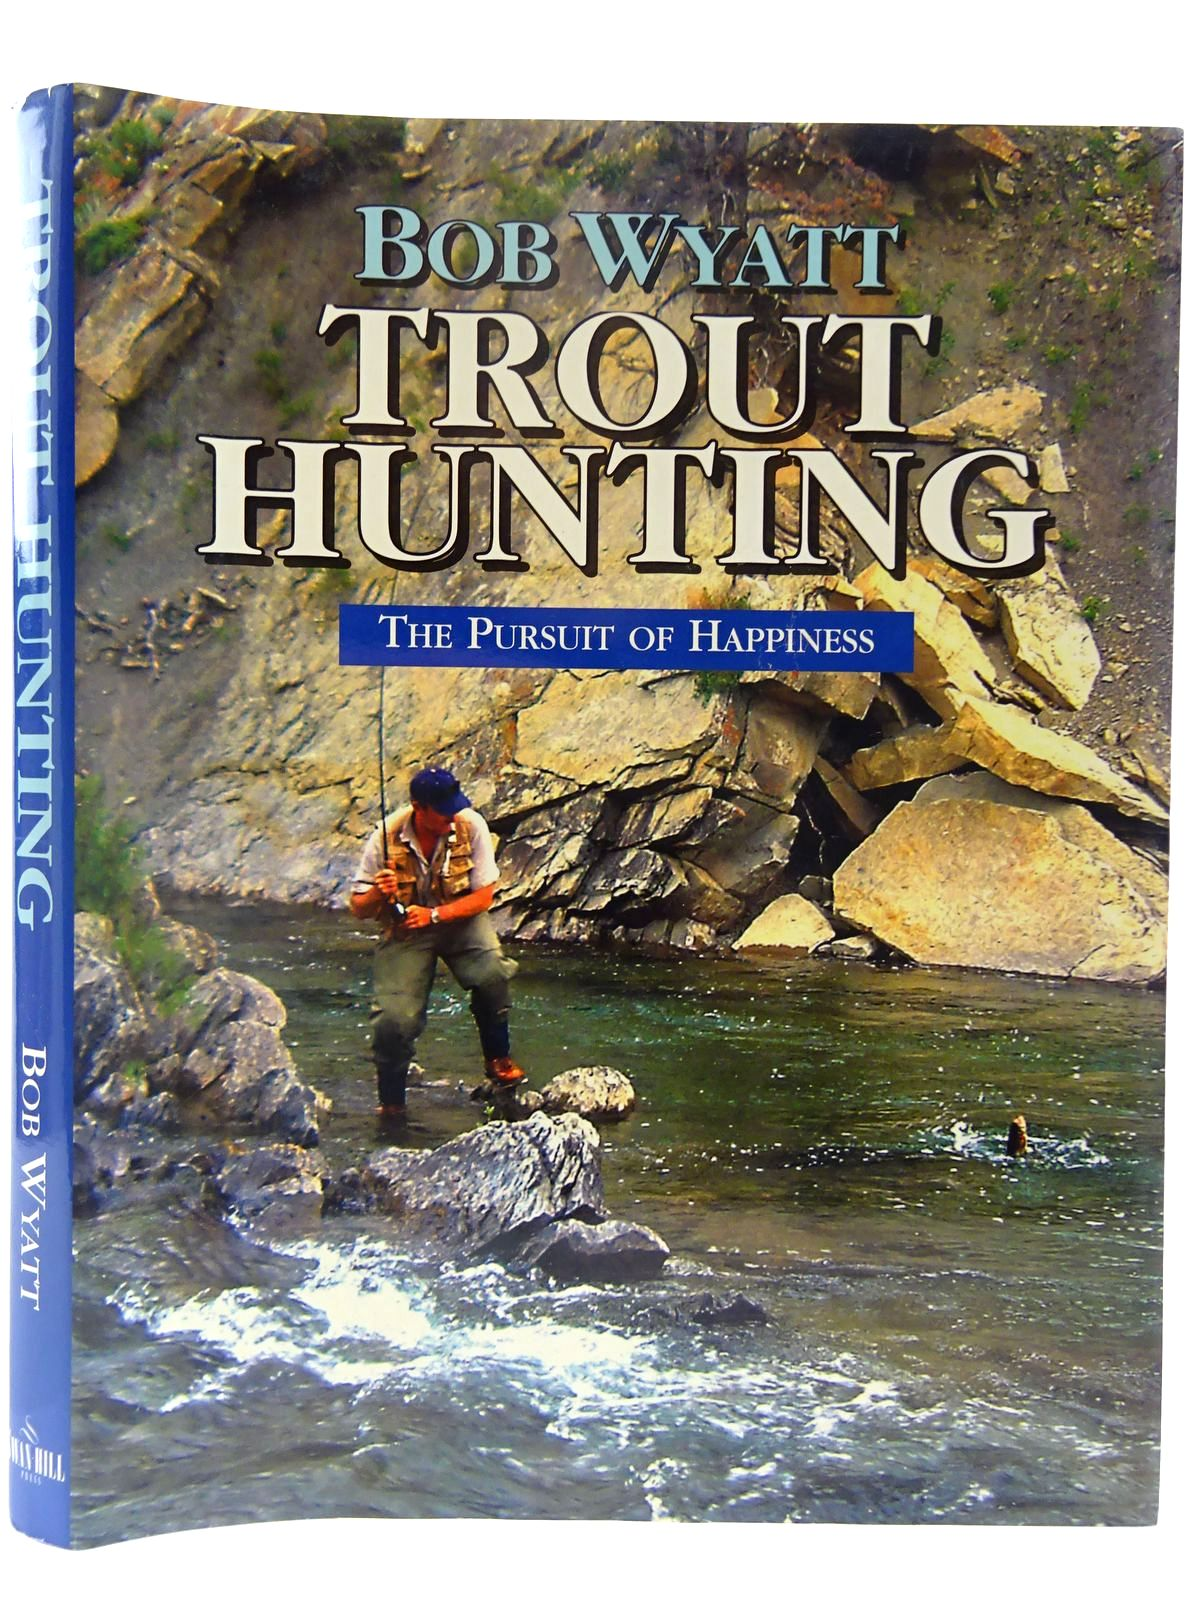 Photo of TROUT HUNTING THE PURSUIT OF HAPPINESS written by Wyatt, Bob published by Swan Hill Press (STOCK CODE: 2128143)  for sale by Stella & Rose's Books